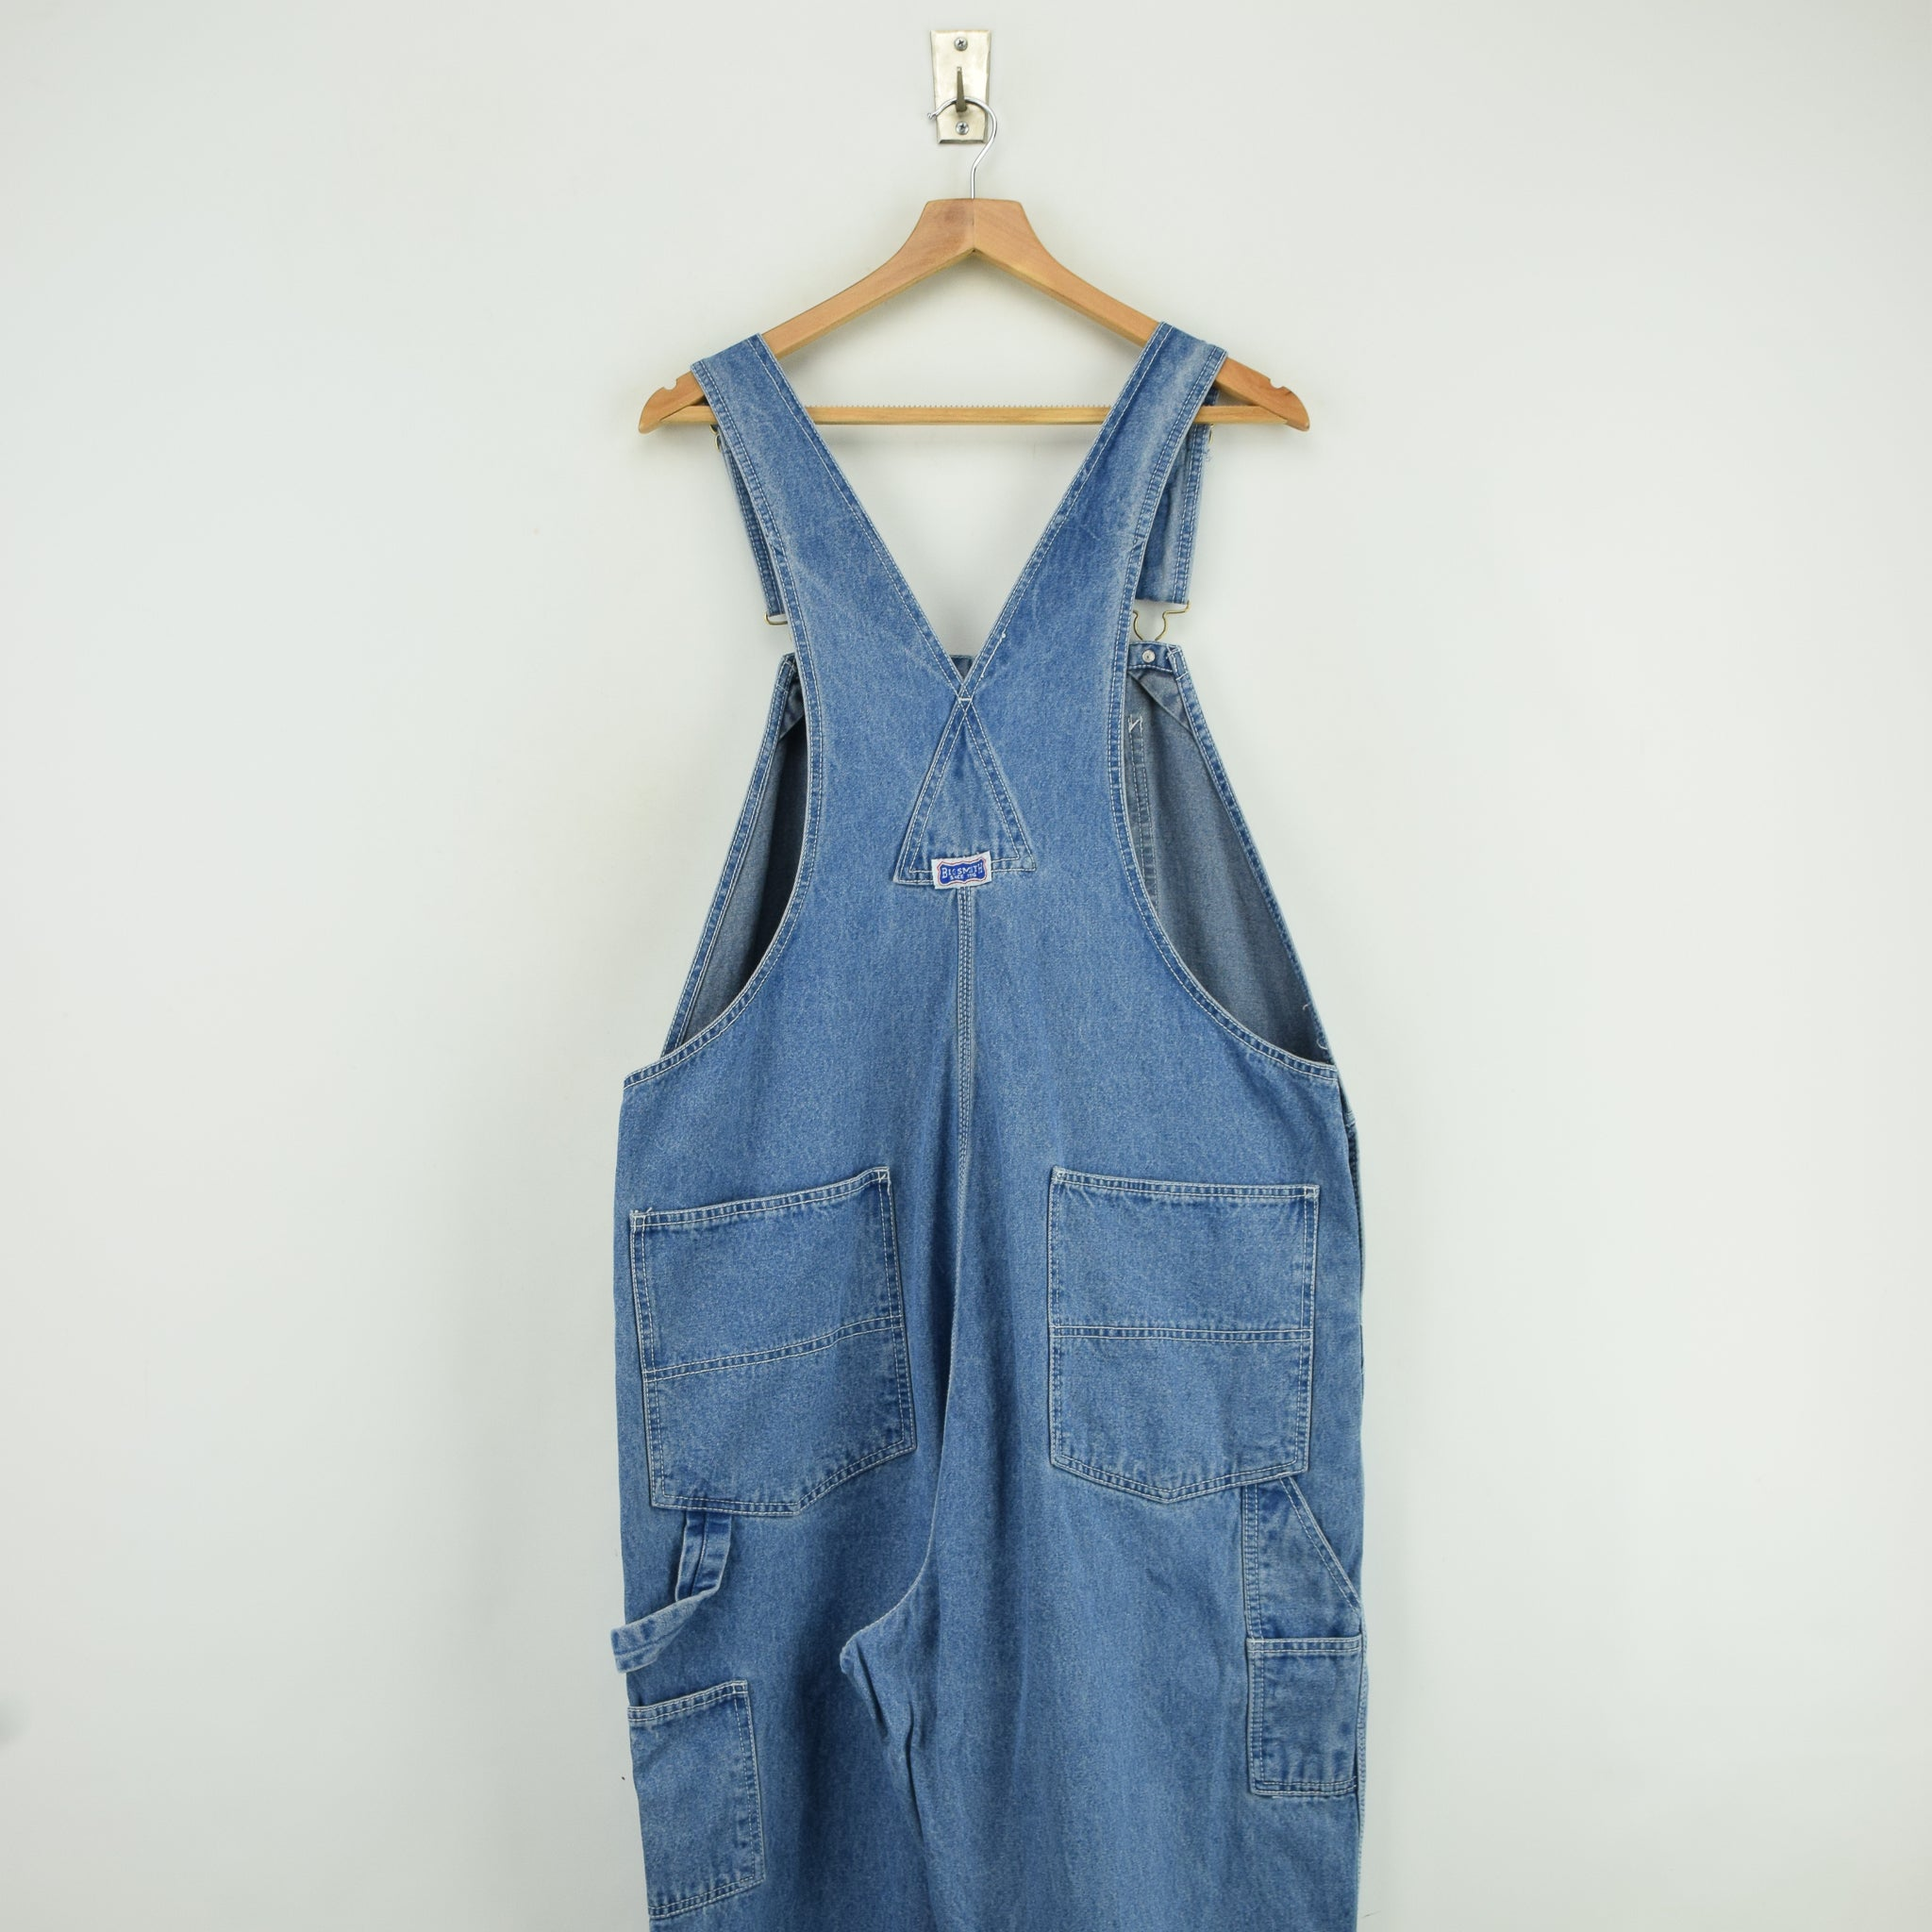 Vintage Big Smith Denim Work Dungarees Blue Bib Overalls Trousers L / XL back